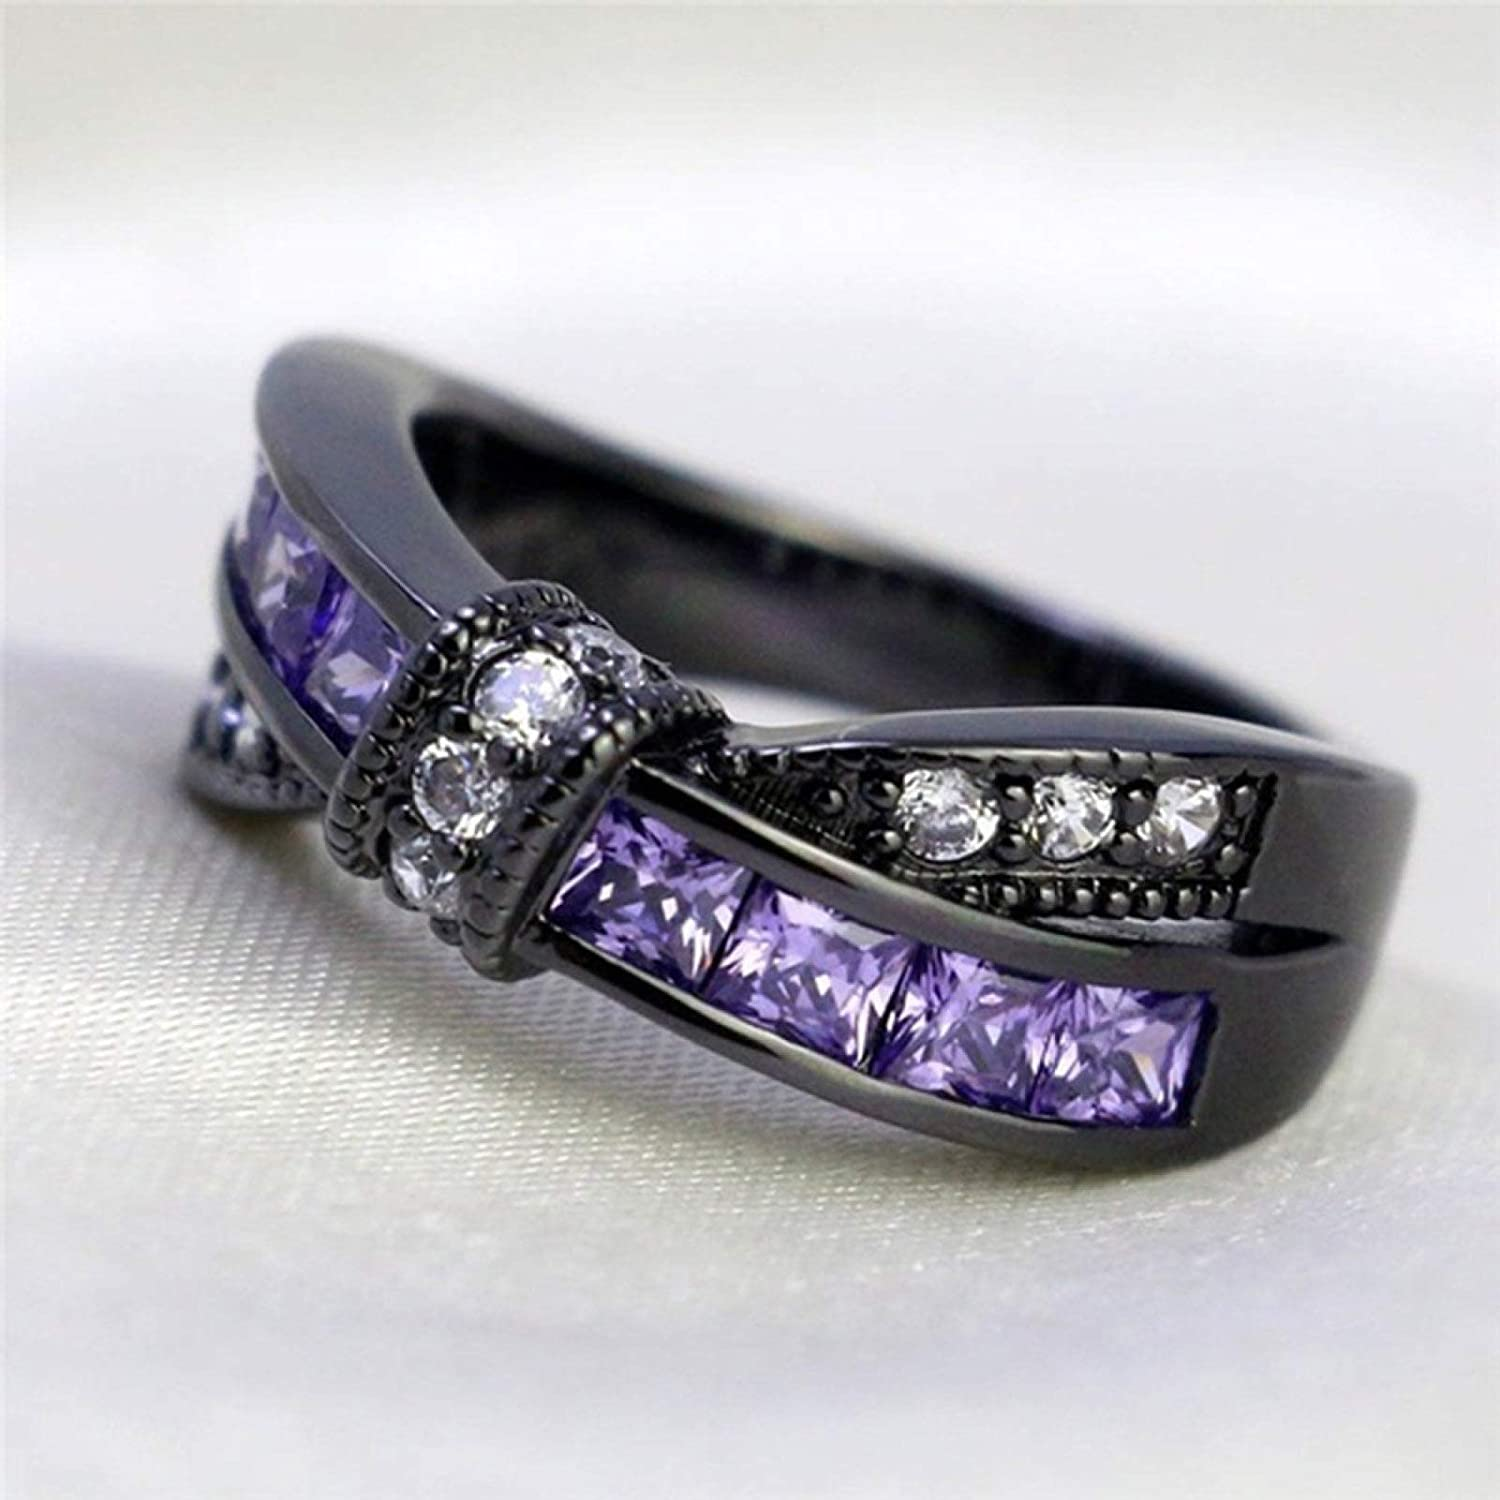 qiguch66 Wedding Rings for Women,Fashion Women Faux Amethyst Inlaid Cross Bowknot Engagement Ring Jewelry Gift - Black US 9